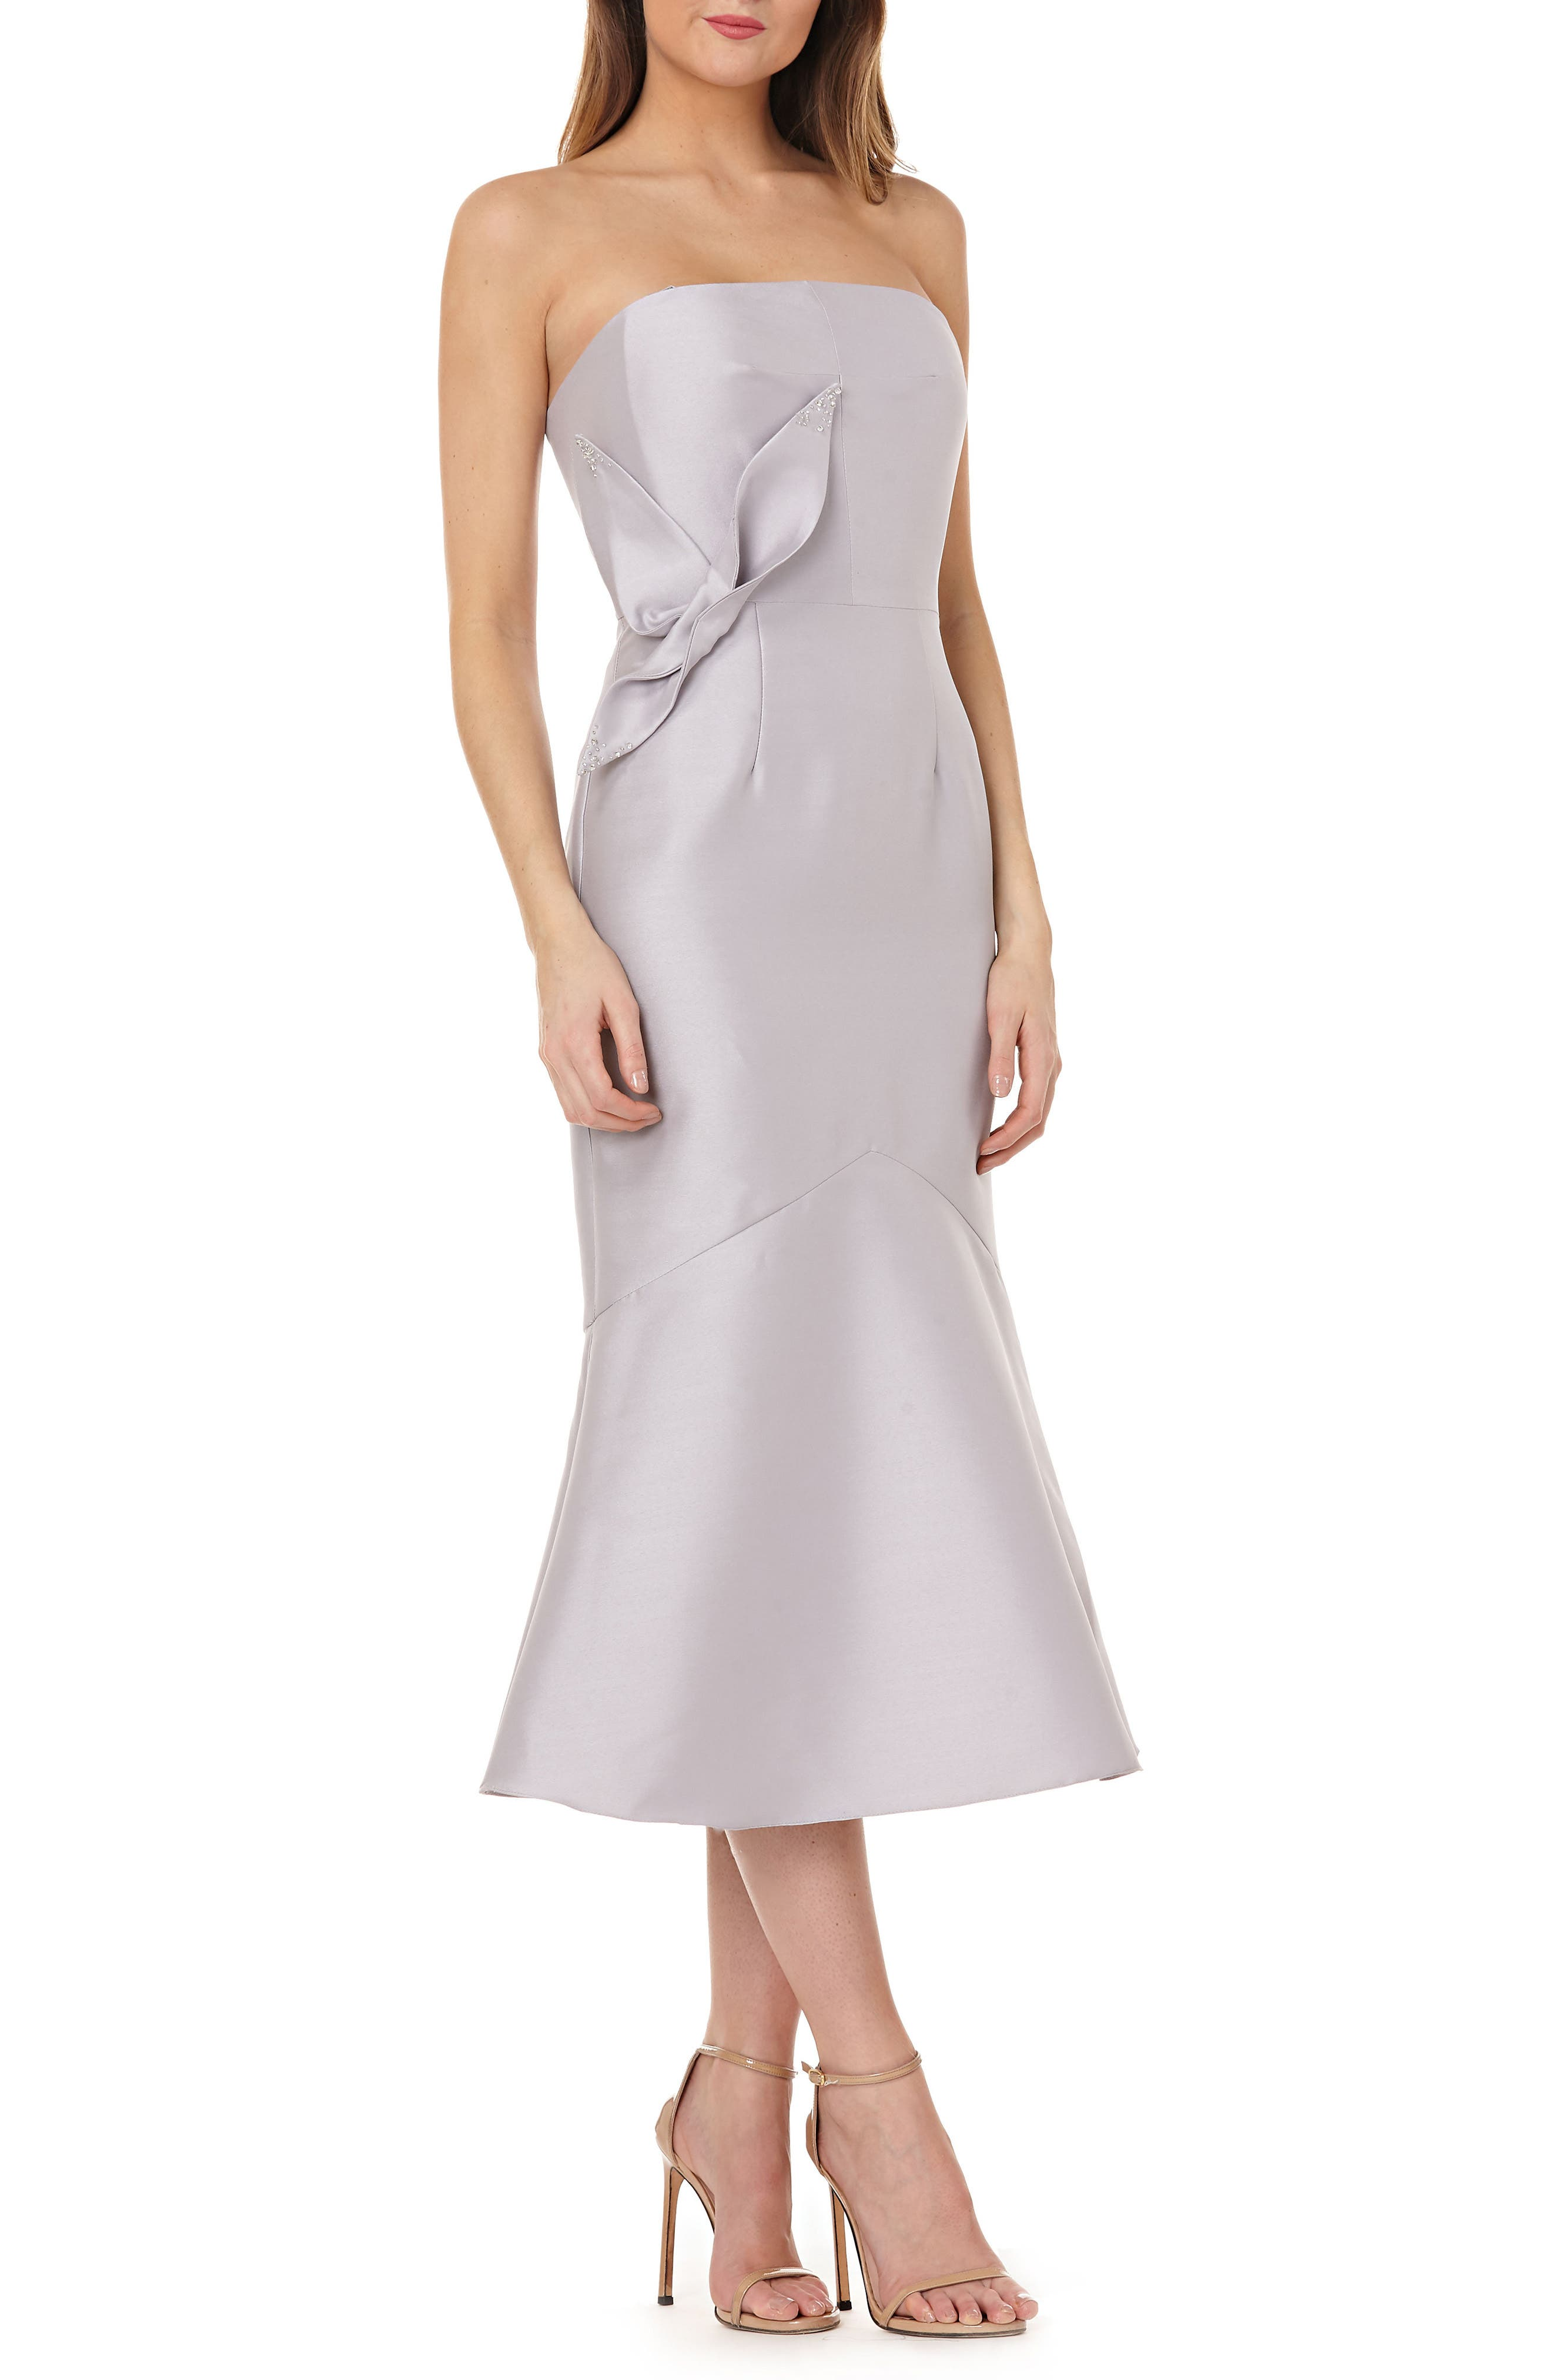 Strapless Satin Tea Length Dress,                             Main thumbnail 1, color,                             DOVE GREY